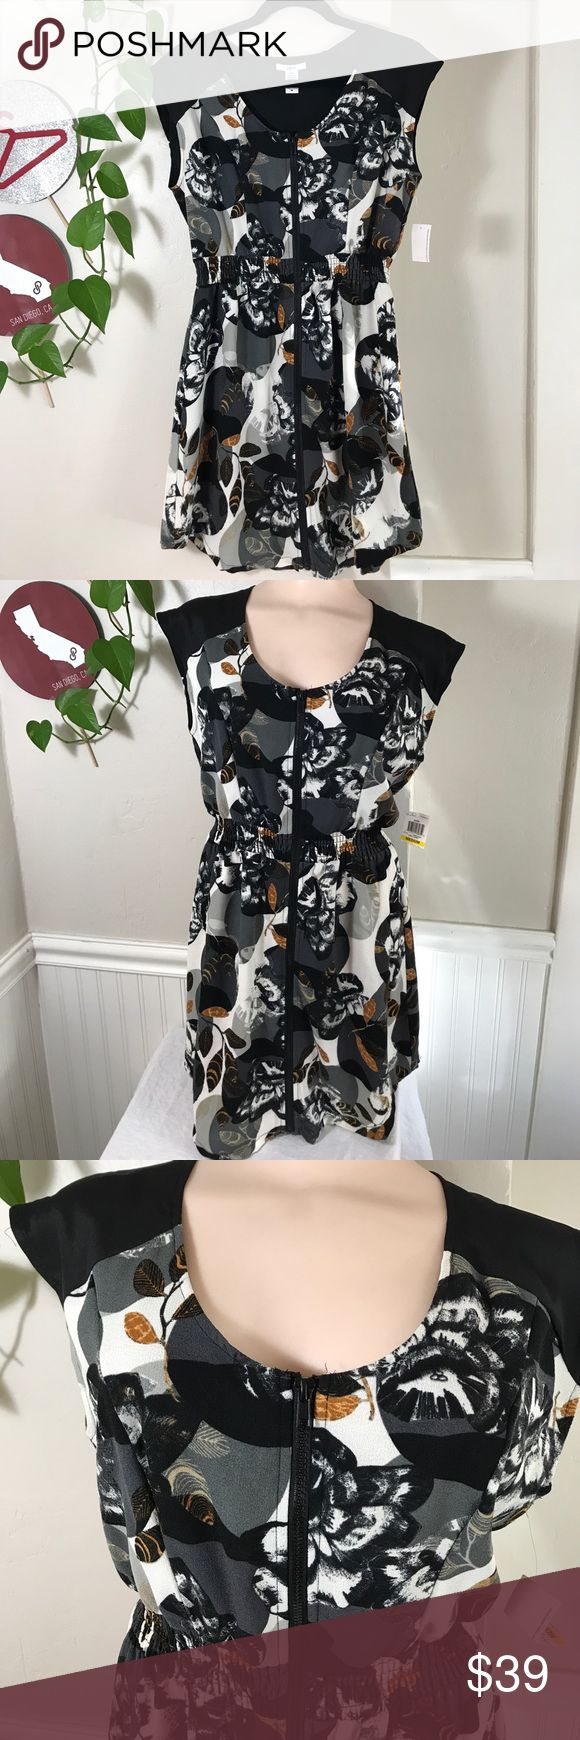 "Bar Iii Women's Floral Zip Front Dress Egret Combo Bar Iii Women's Floral Zip Front Dress Egret Combo. B042. Fabric: 98% Polyester 2% Spandex. Lightweight. Small is 18"" across armpit to armpit 34"" long. Medium is 19"" across armpit to armpit 34"" long. XL is 21"" across armpit to armpit 36"" long.Size Type: Sleeveless, Front Zipper. Elastic Waistband. Bar III Dresses Midi"